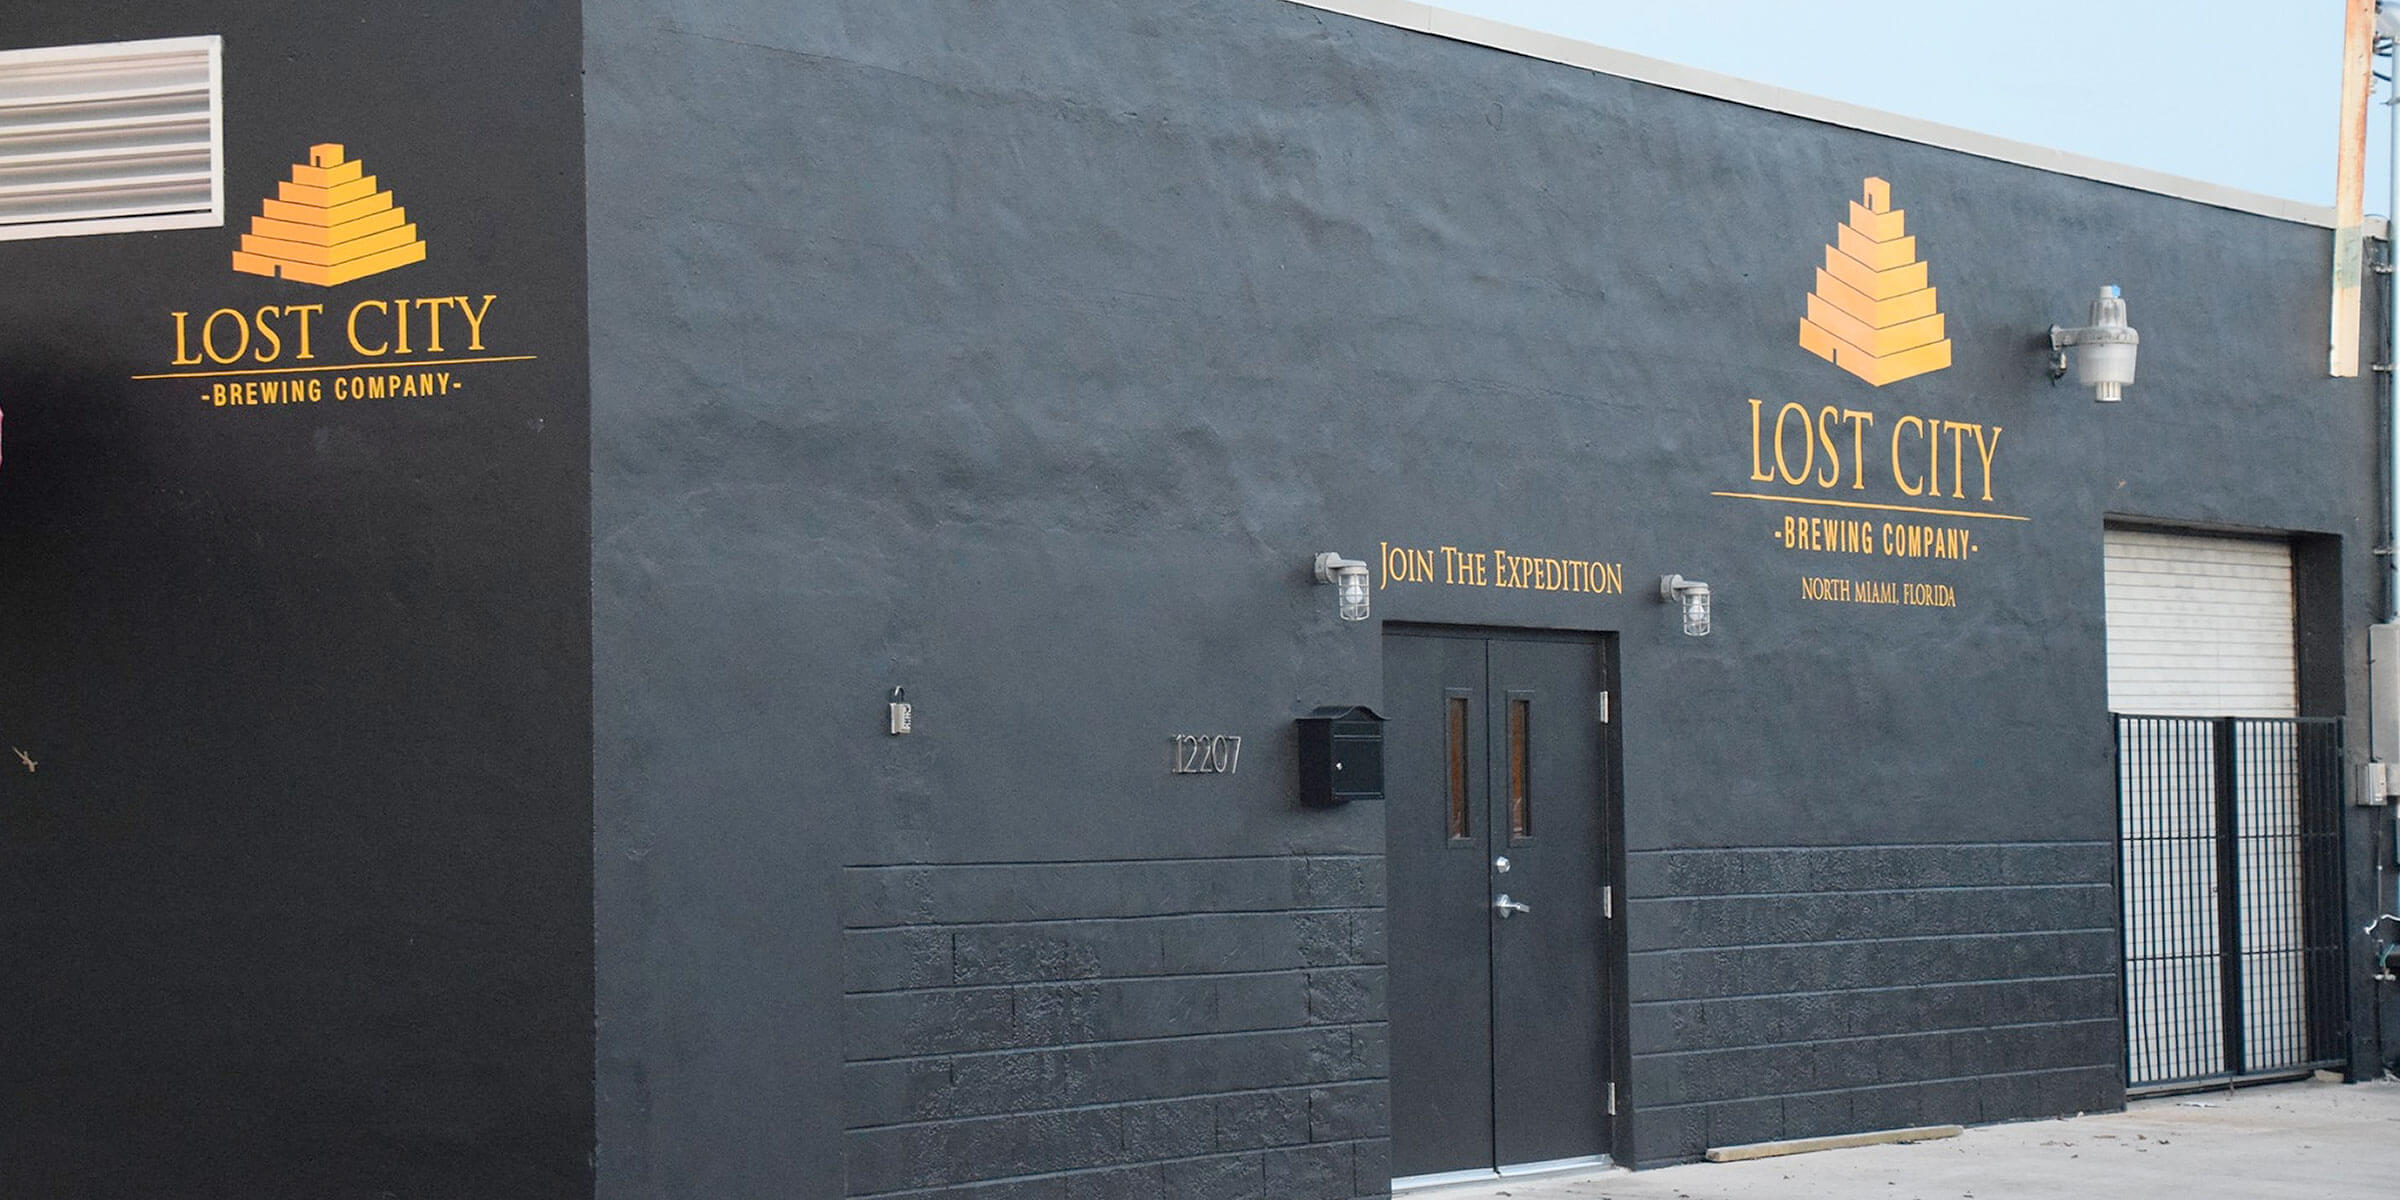 Outside the entrance to Lost City Brewing Company in North Miami, Florida